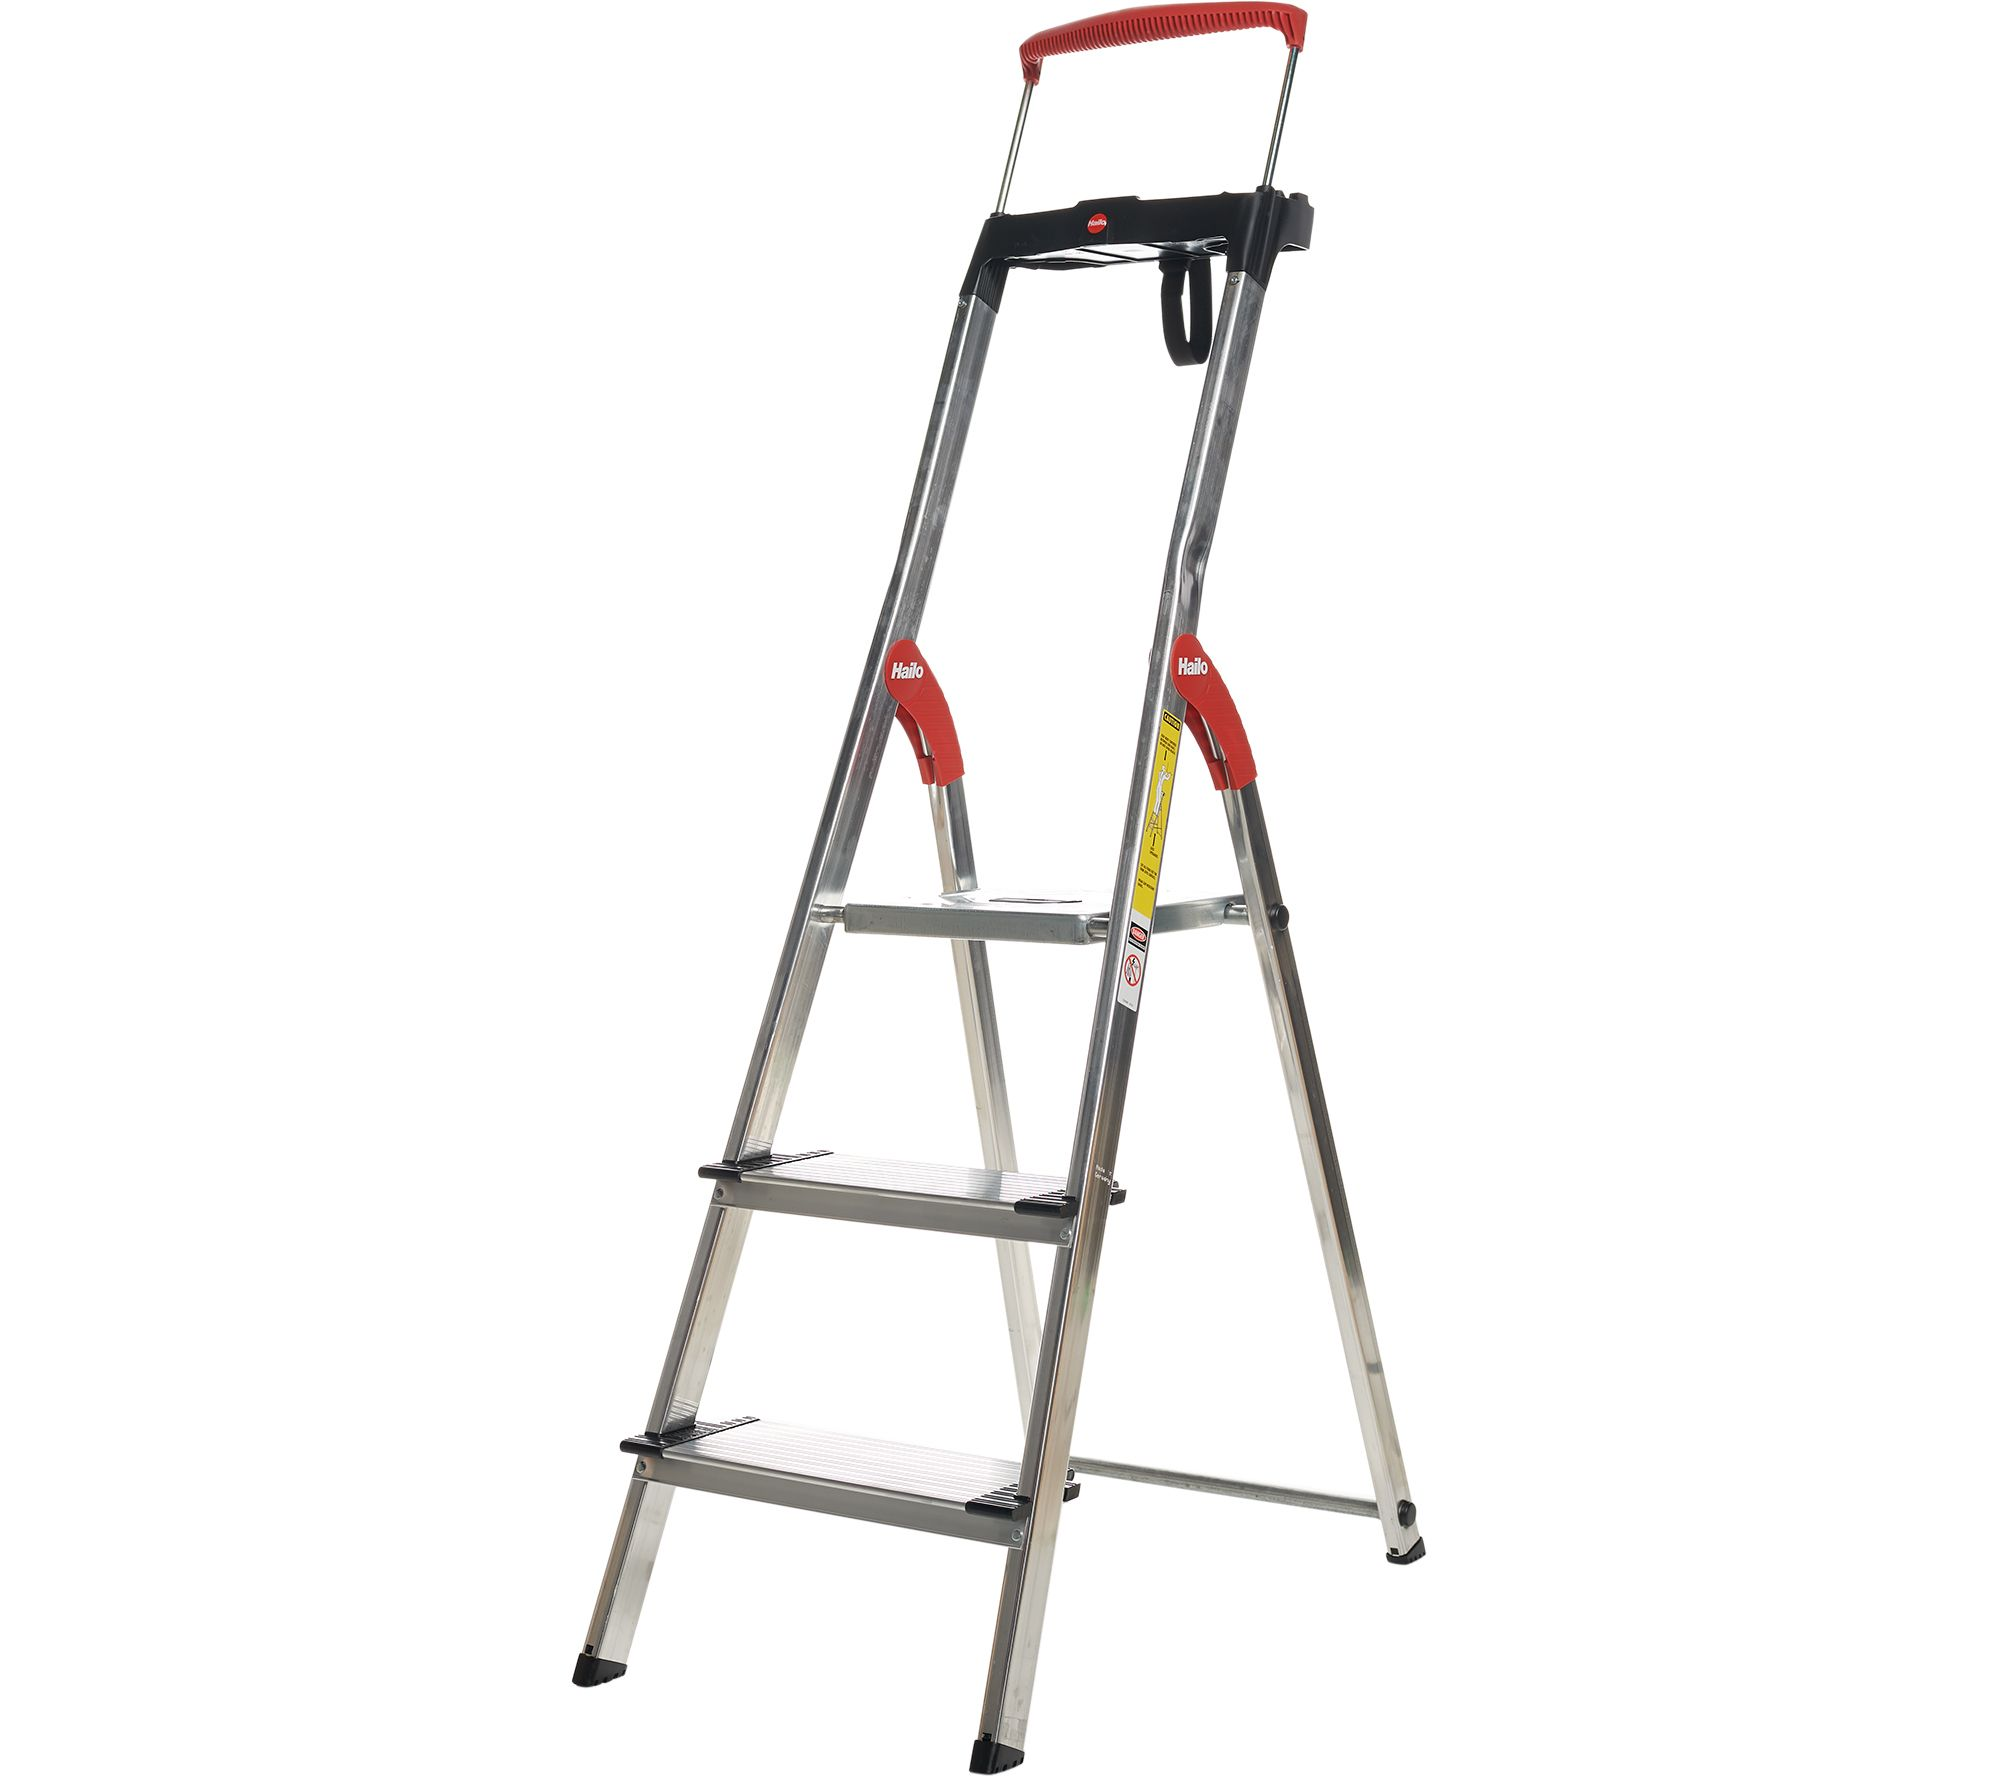 Remarkable Hailo 3 Step Lightweight Ladder With Safety Rail Qvc Com Inzonedesignstudio Interior Chair Design Inzonedesignstudiocom